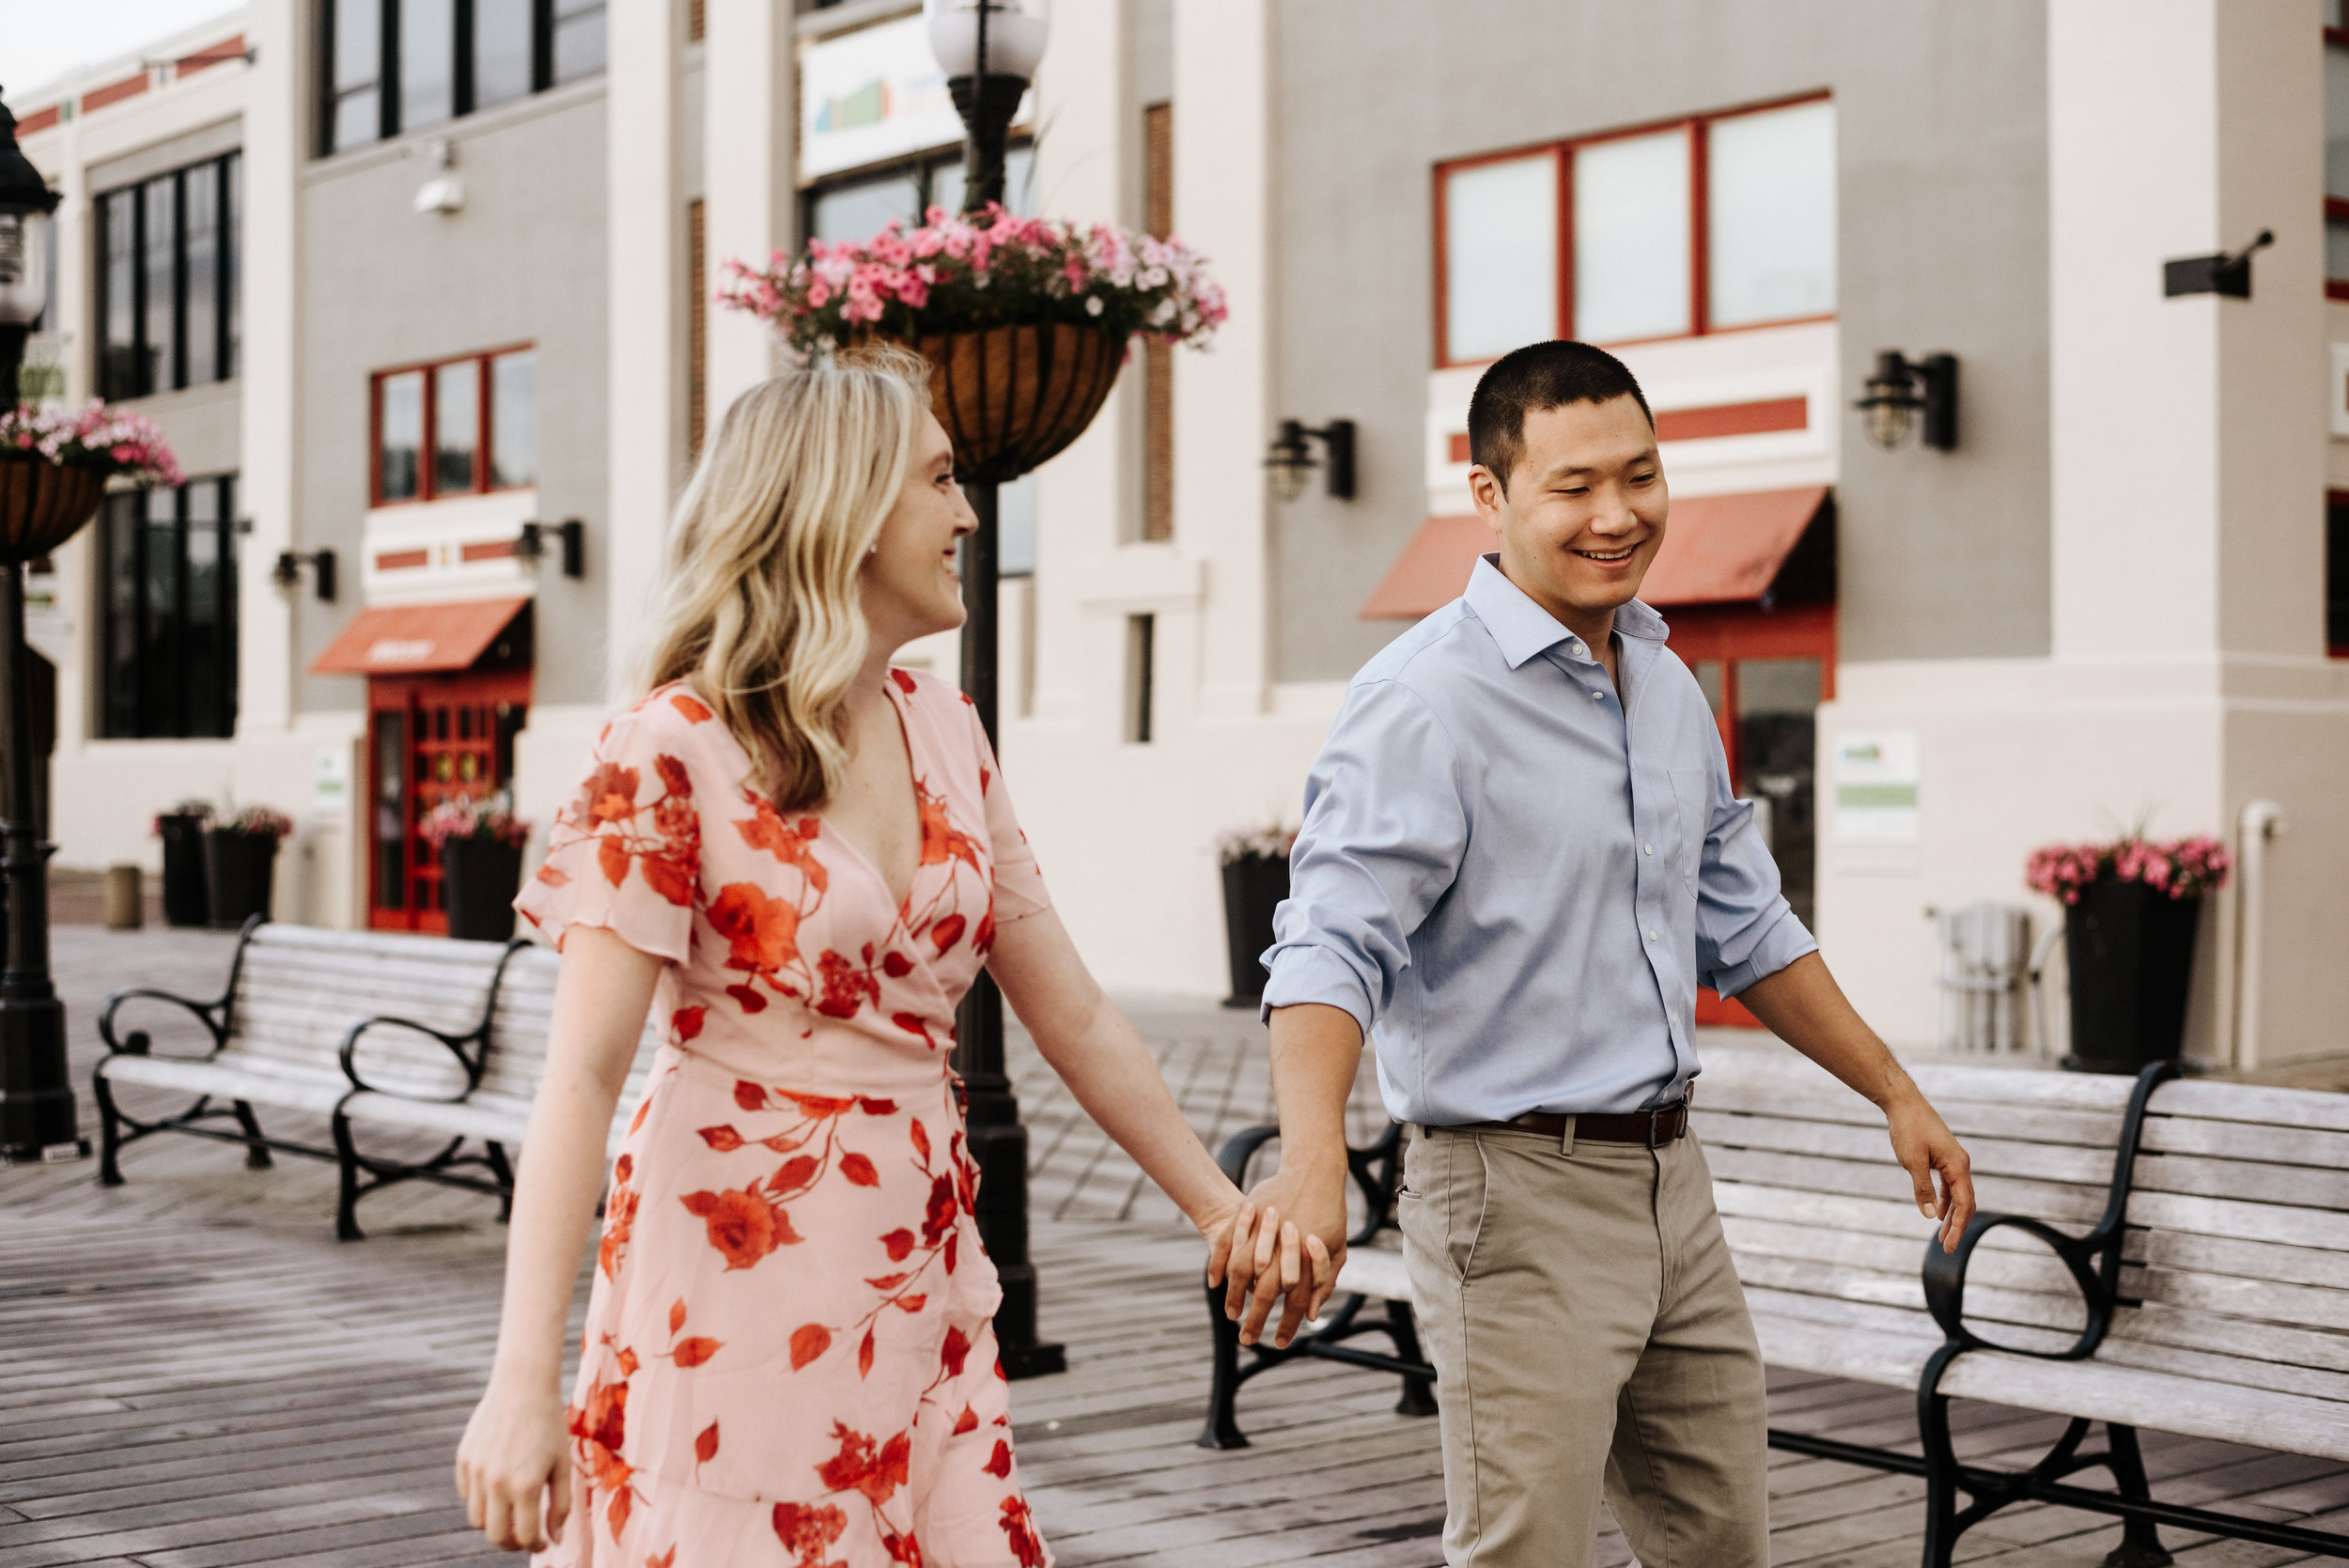 Bella_Alec_Old_Town_Alexandria_Engagement_Session_Photography_by_V_5485.jpg